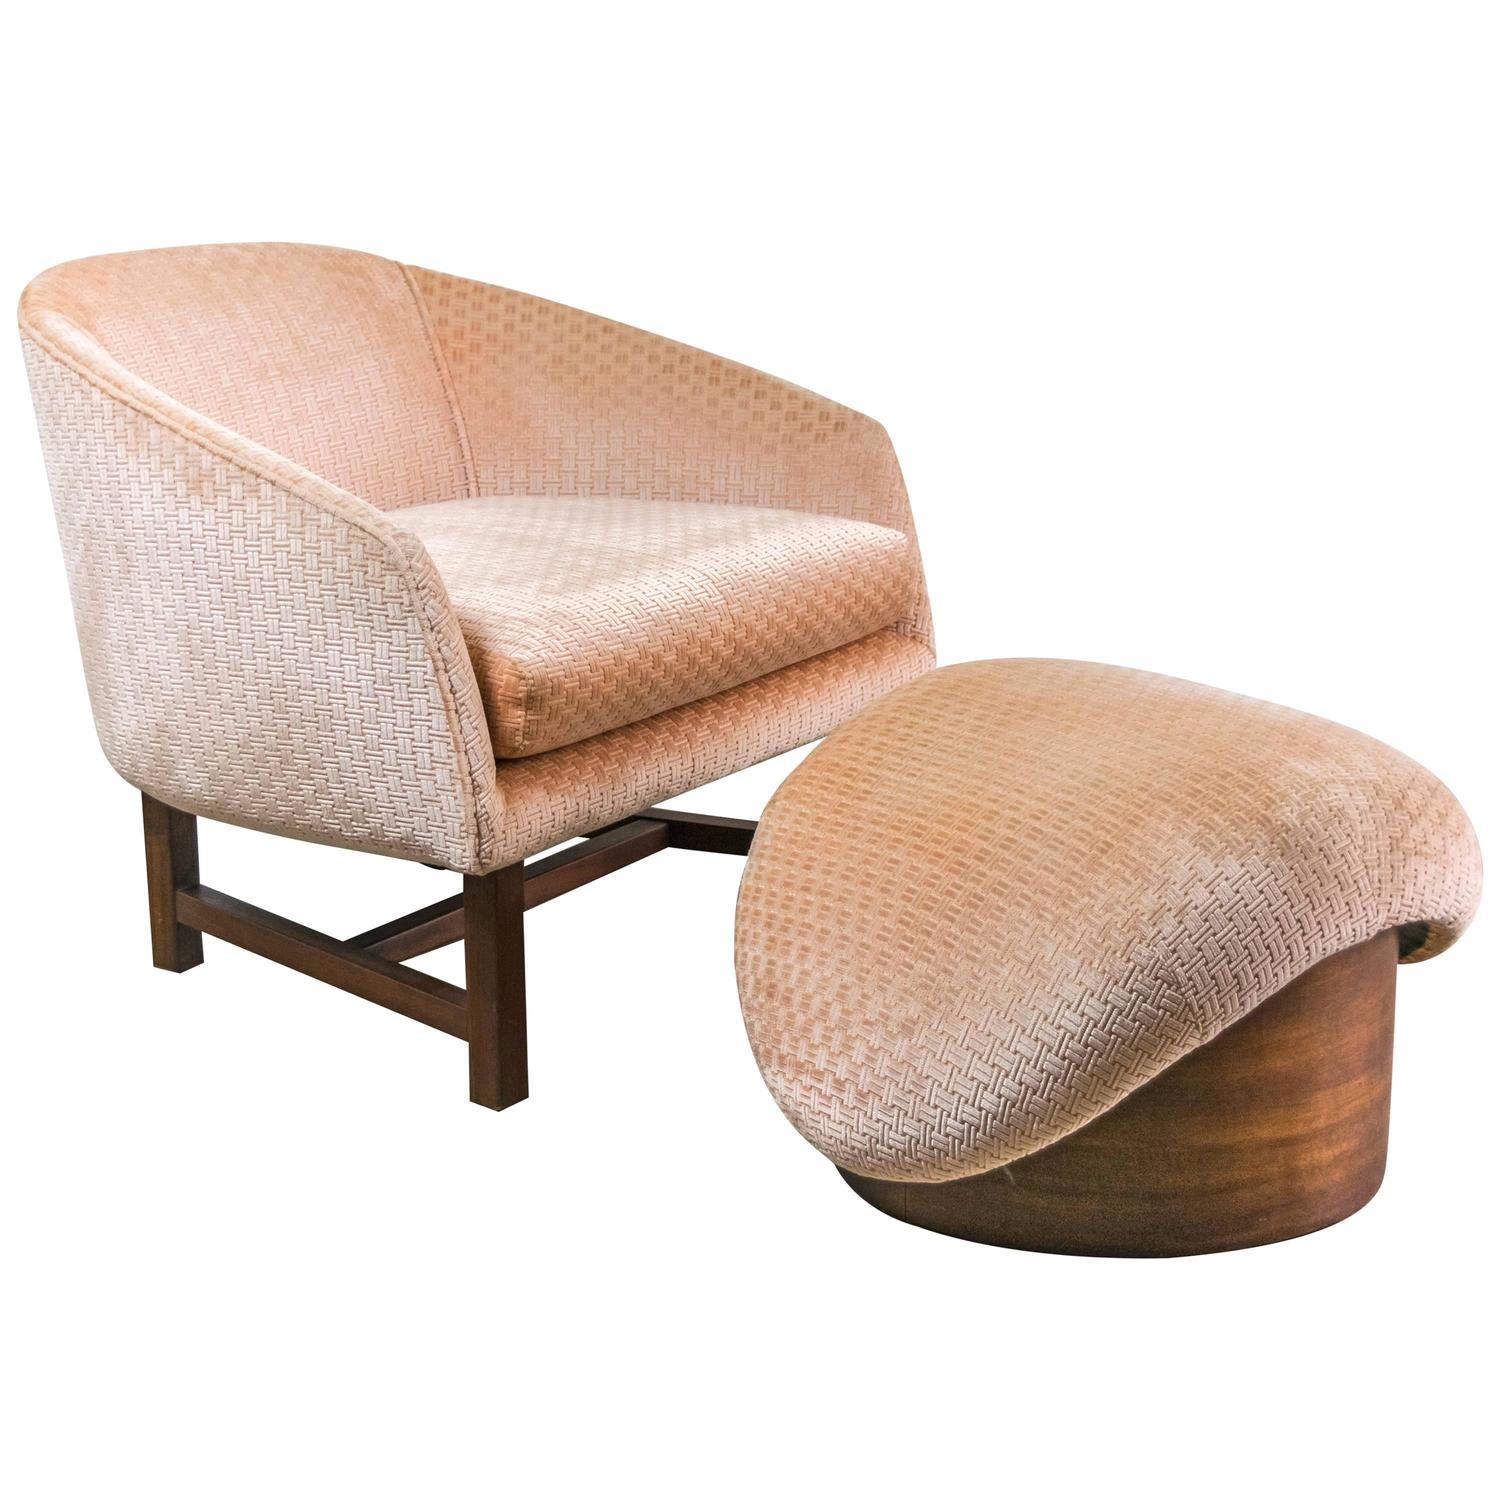 Mid century modern reading chair and ottoman at 1stdibs for Contemporary furniture chairs